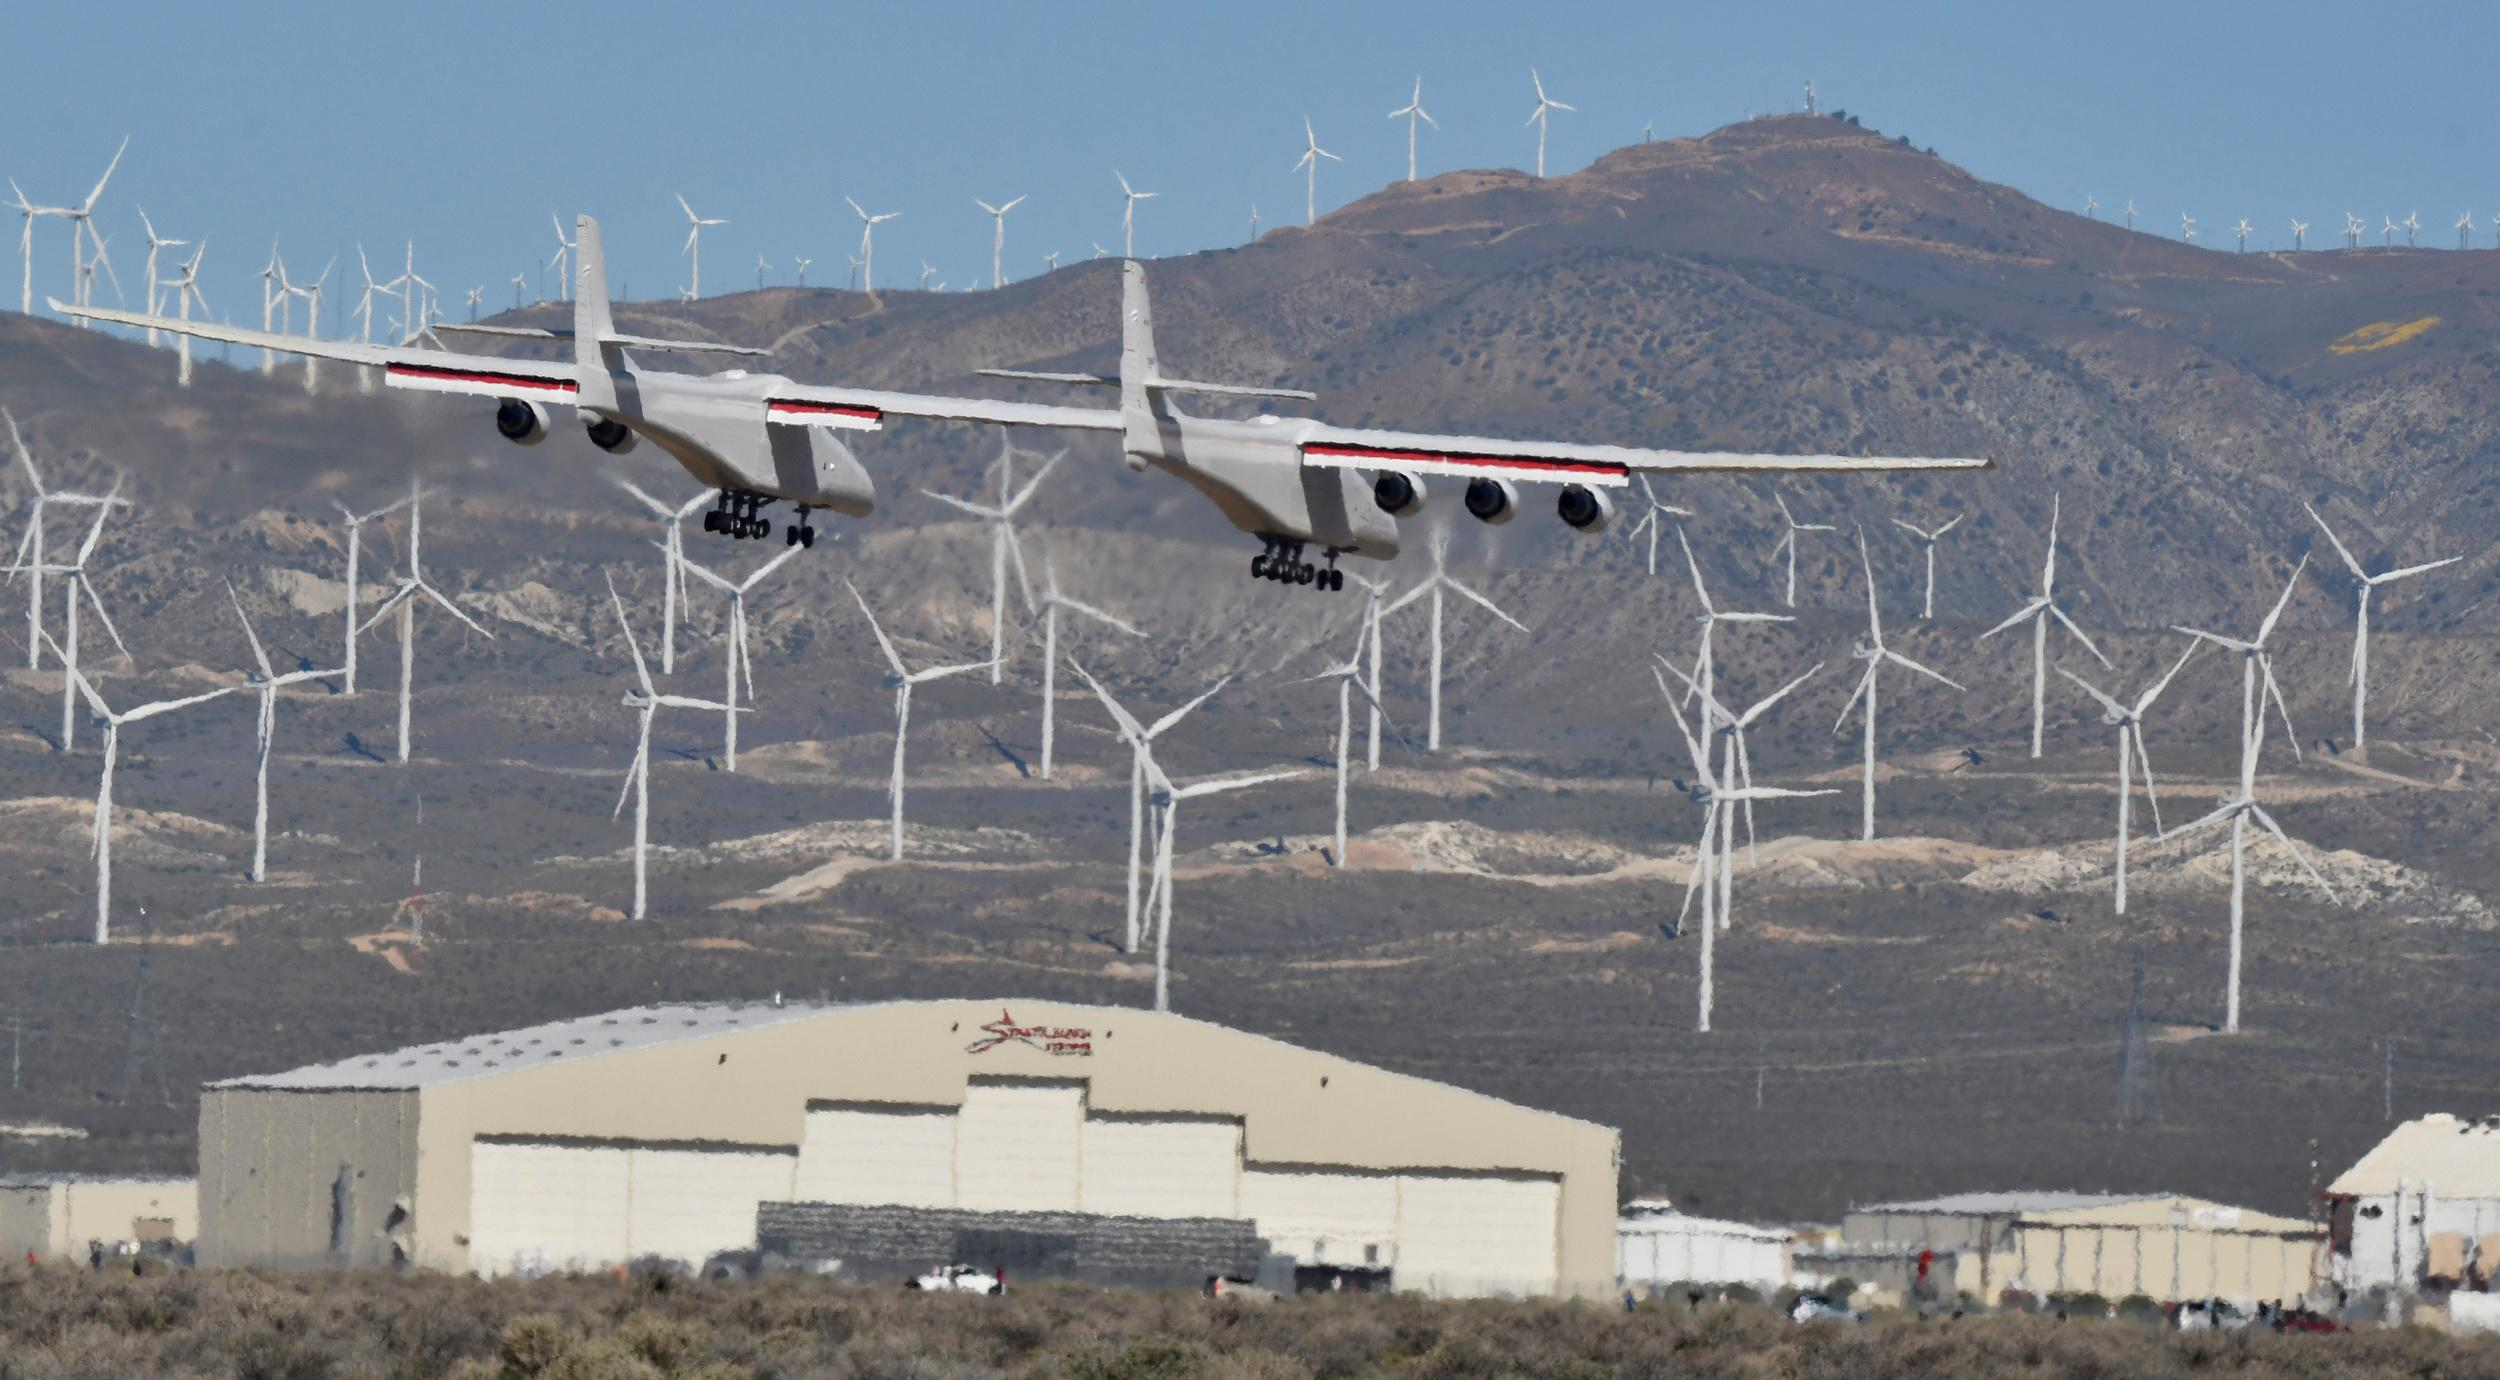 The world's largest airplane, built by the late Paul Allen's company Stratolaunch Systems, lands during its first test flight in Mojave, California, U.S. April 13, 2019.  REUTERS/Gene Blevins